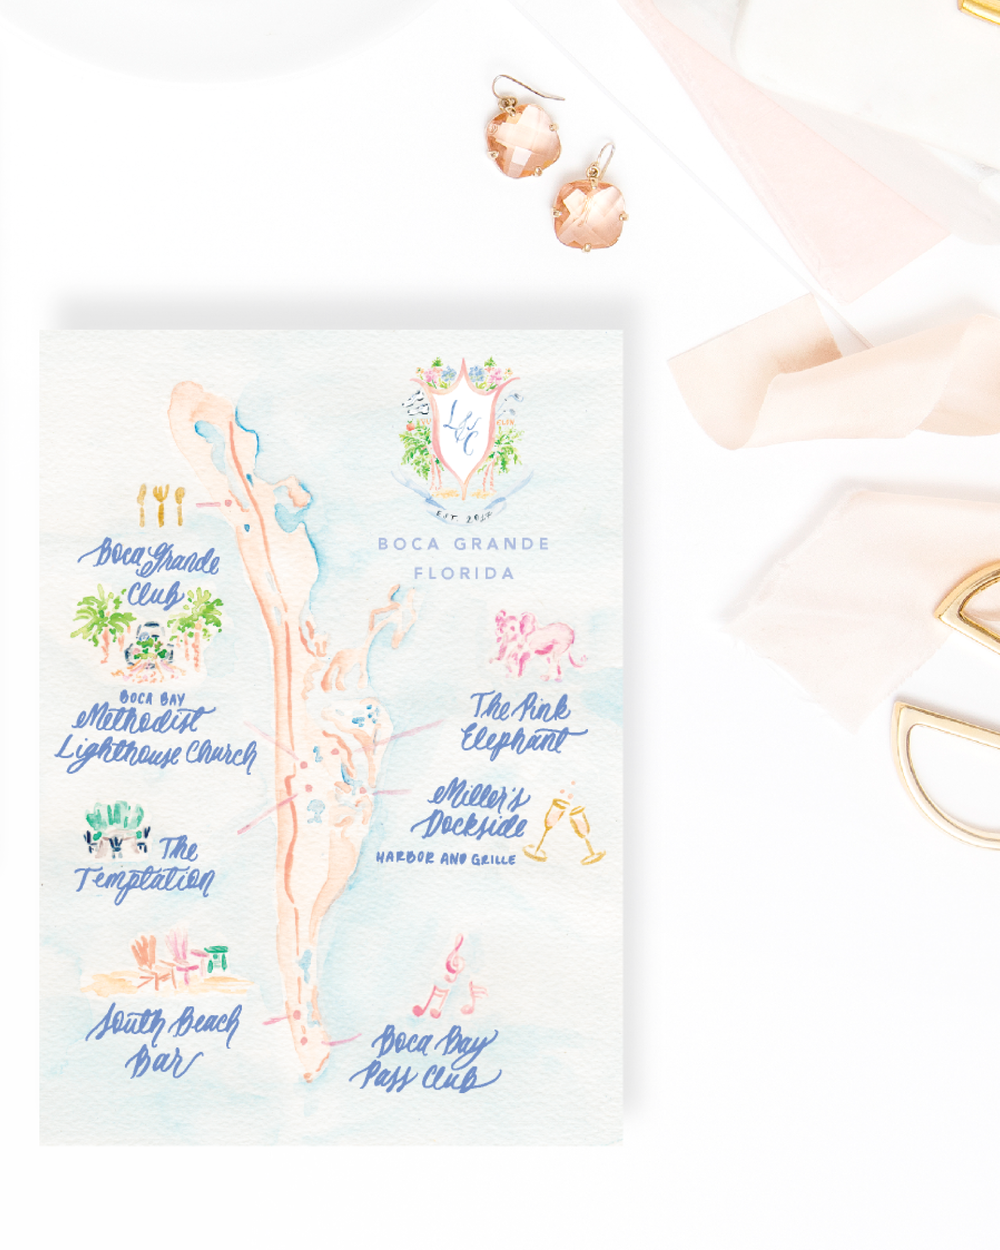 Custom watercolor wedding map of Boca Grande, Florida by Simply Jessica Marie | Photo by SC Stockshop